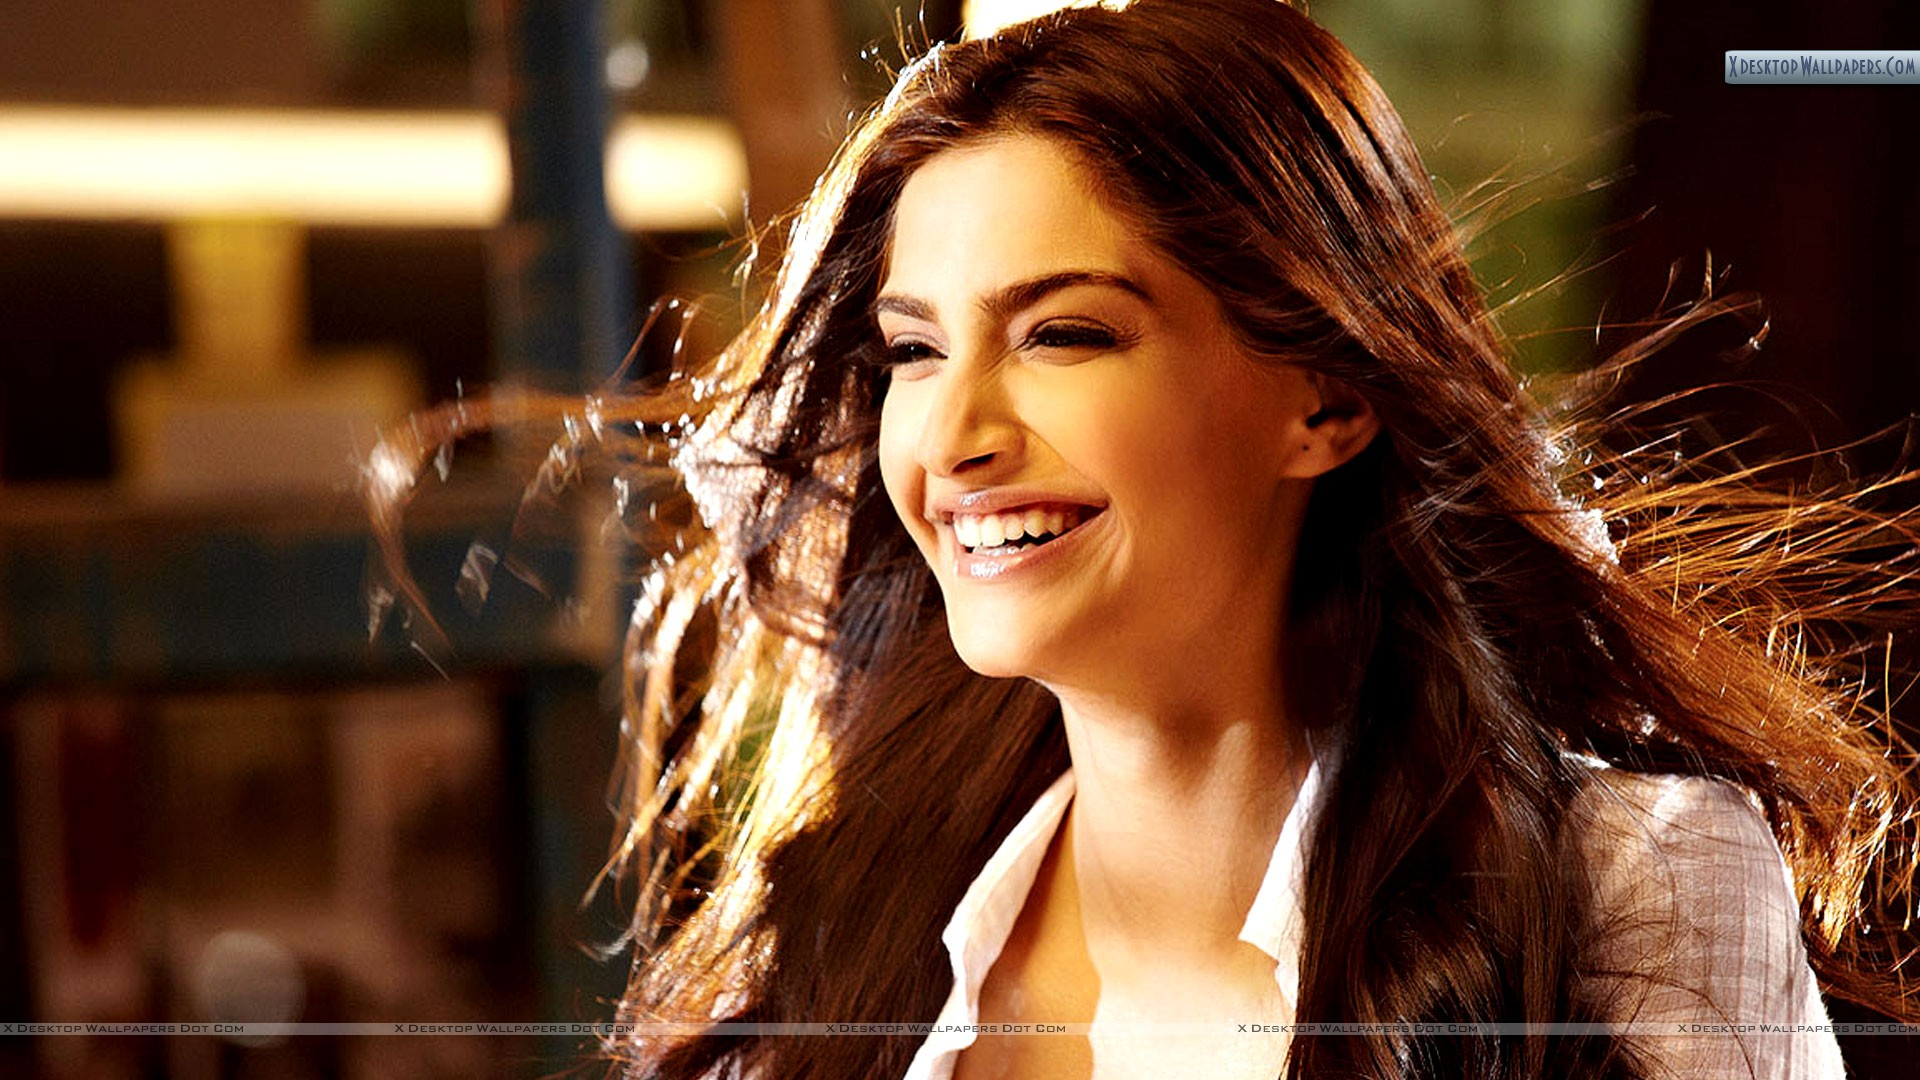 Sonam Kapoor Laughing In I Hate Luv Storys Wallpaper 1920x1080